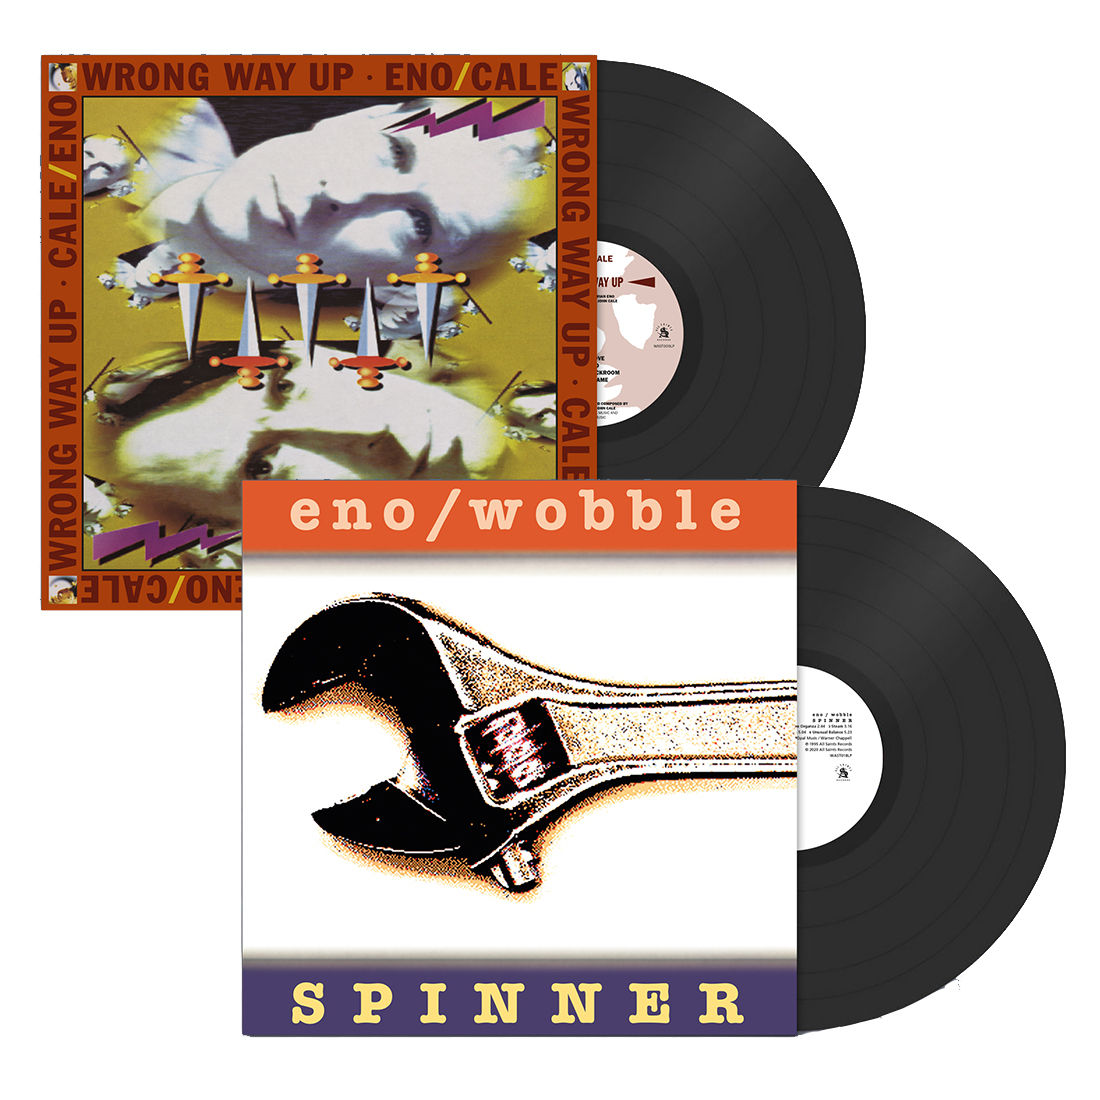 Brian Eno & John Cale – Wrong Way Up/  Brian Eno & Jah Wobble – Spinner (All Saints Records) (Re-issues)